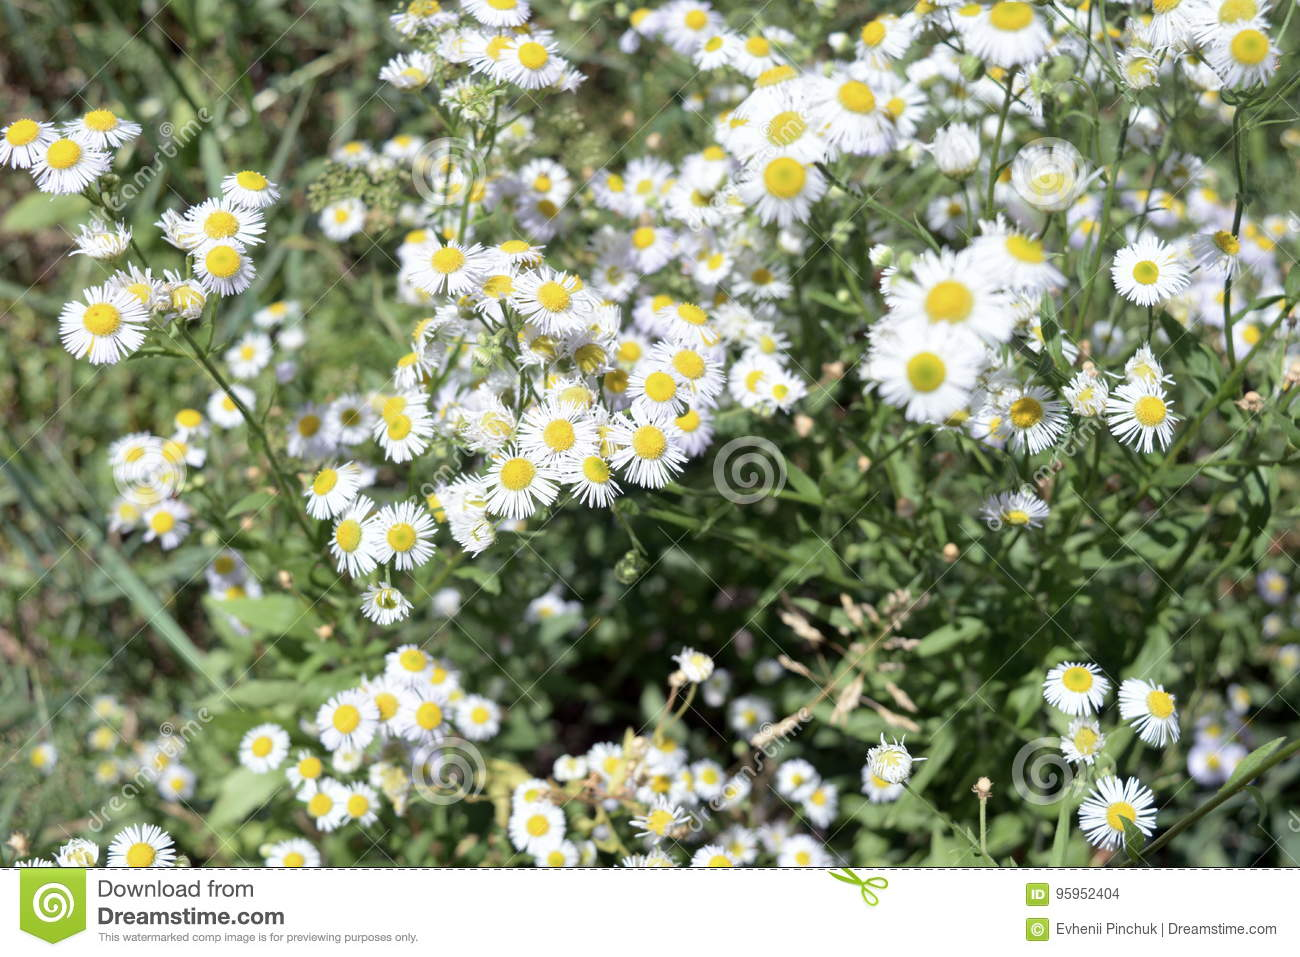 White little daisy flowers stock photo image of lots 95952404 download white little daisy flowers stock photo image of lots 95952404 izmirmasajfo